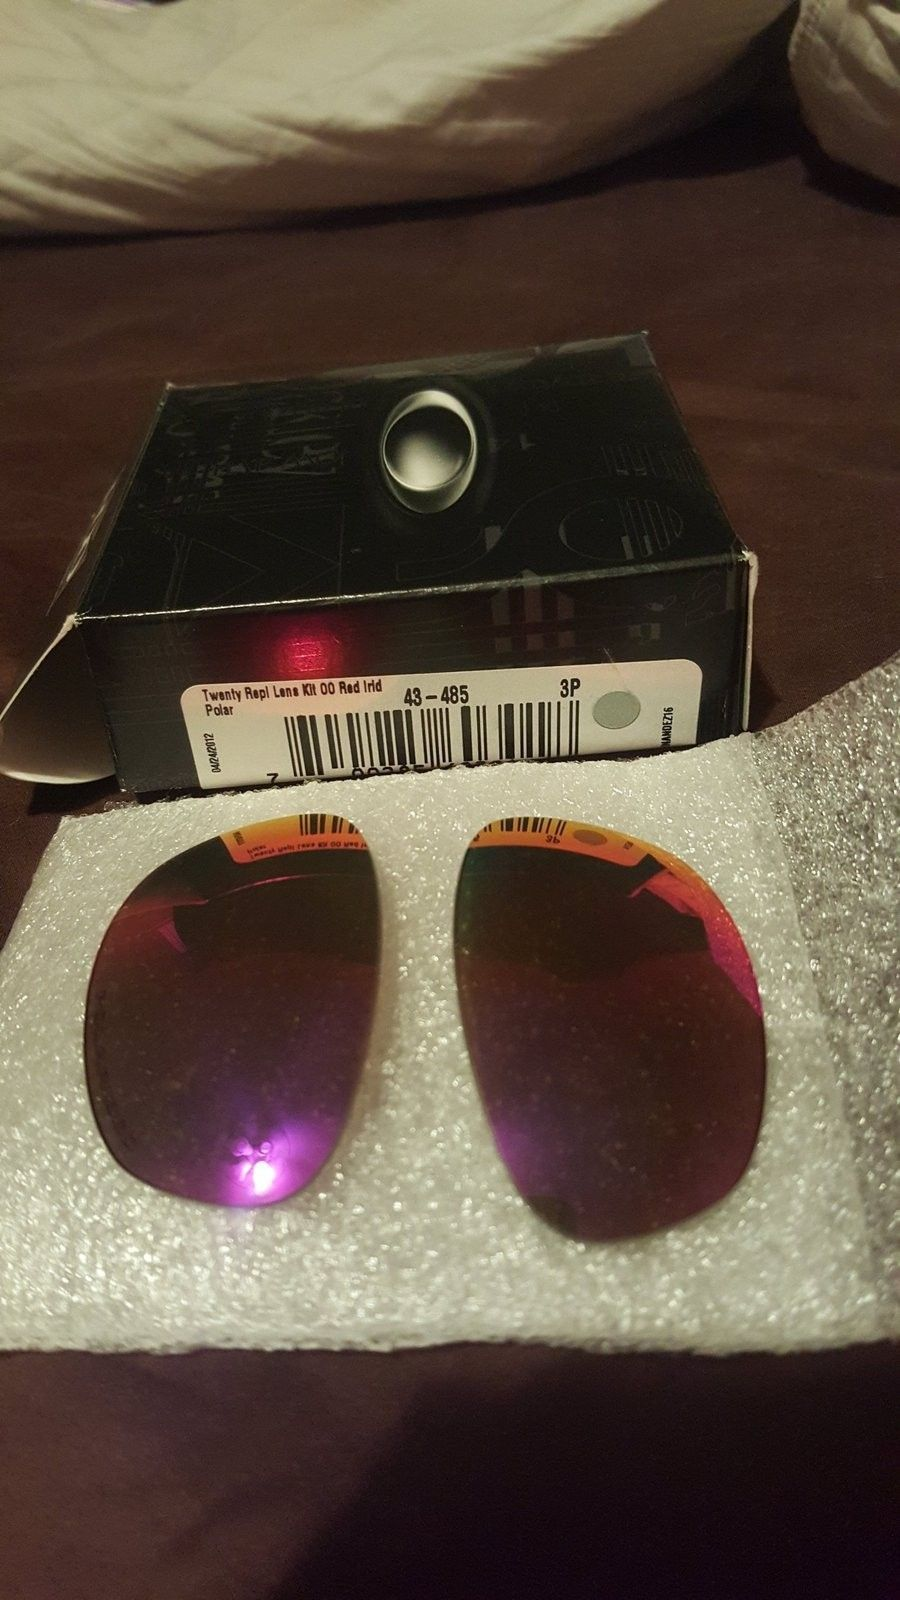 Twenty 00 red iridium polarized. OEM BNIB never mounted 43-485 - 14522367288661604375381.jpg